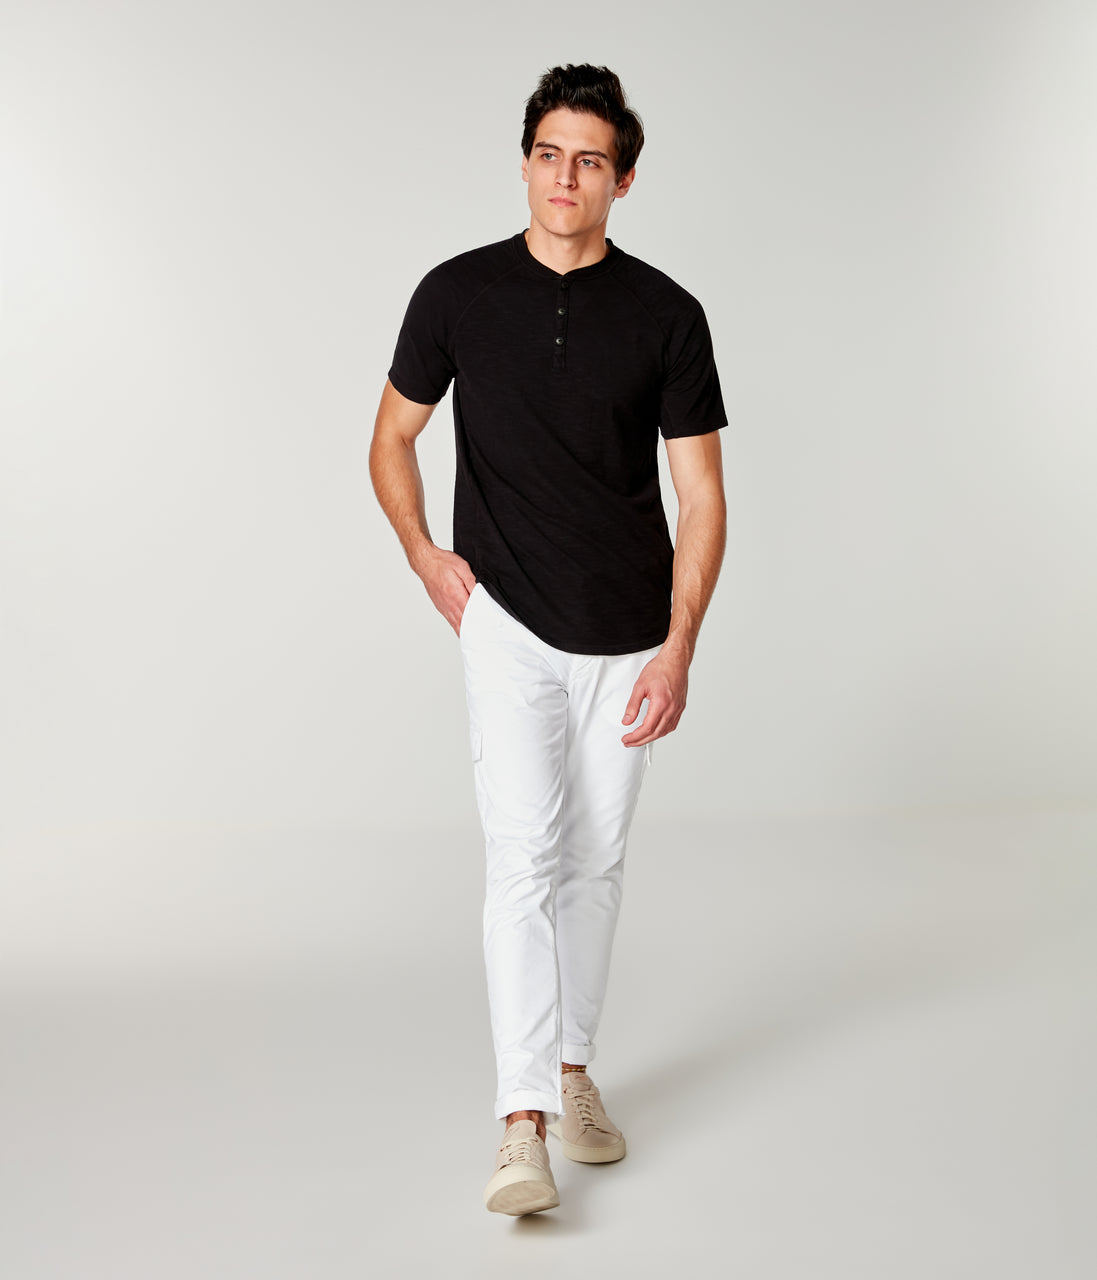 Soft Slub Jersey Legend Henley - Black - Good Man Brand - Soft Slub Jersey Legend Henley - Black